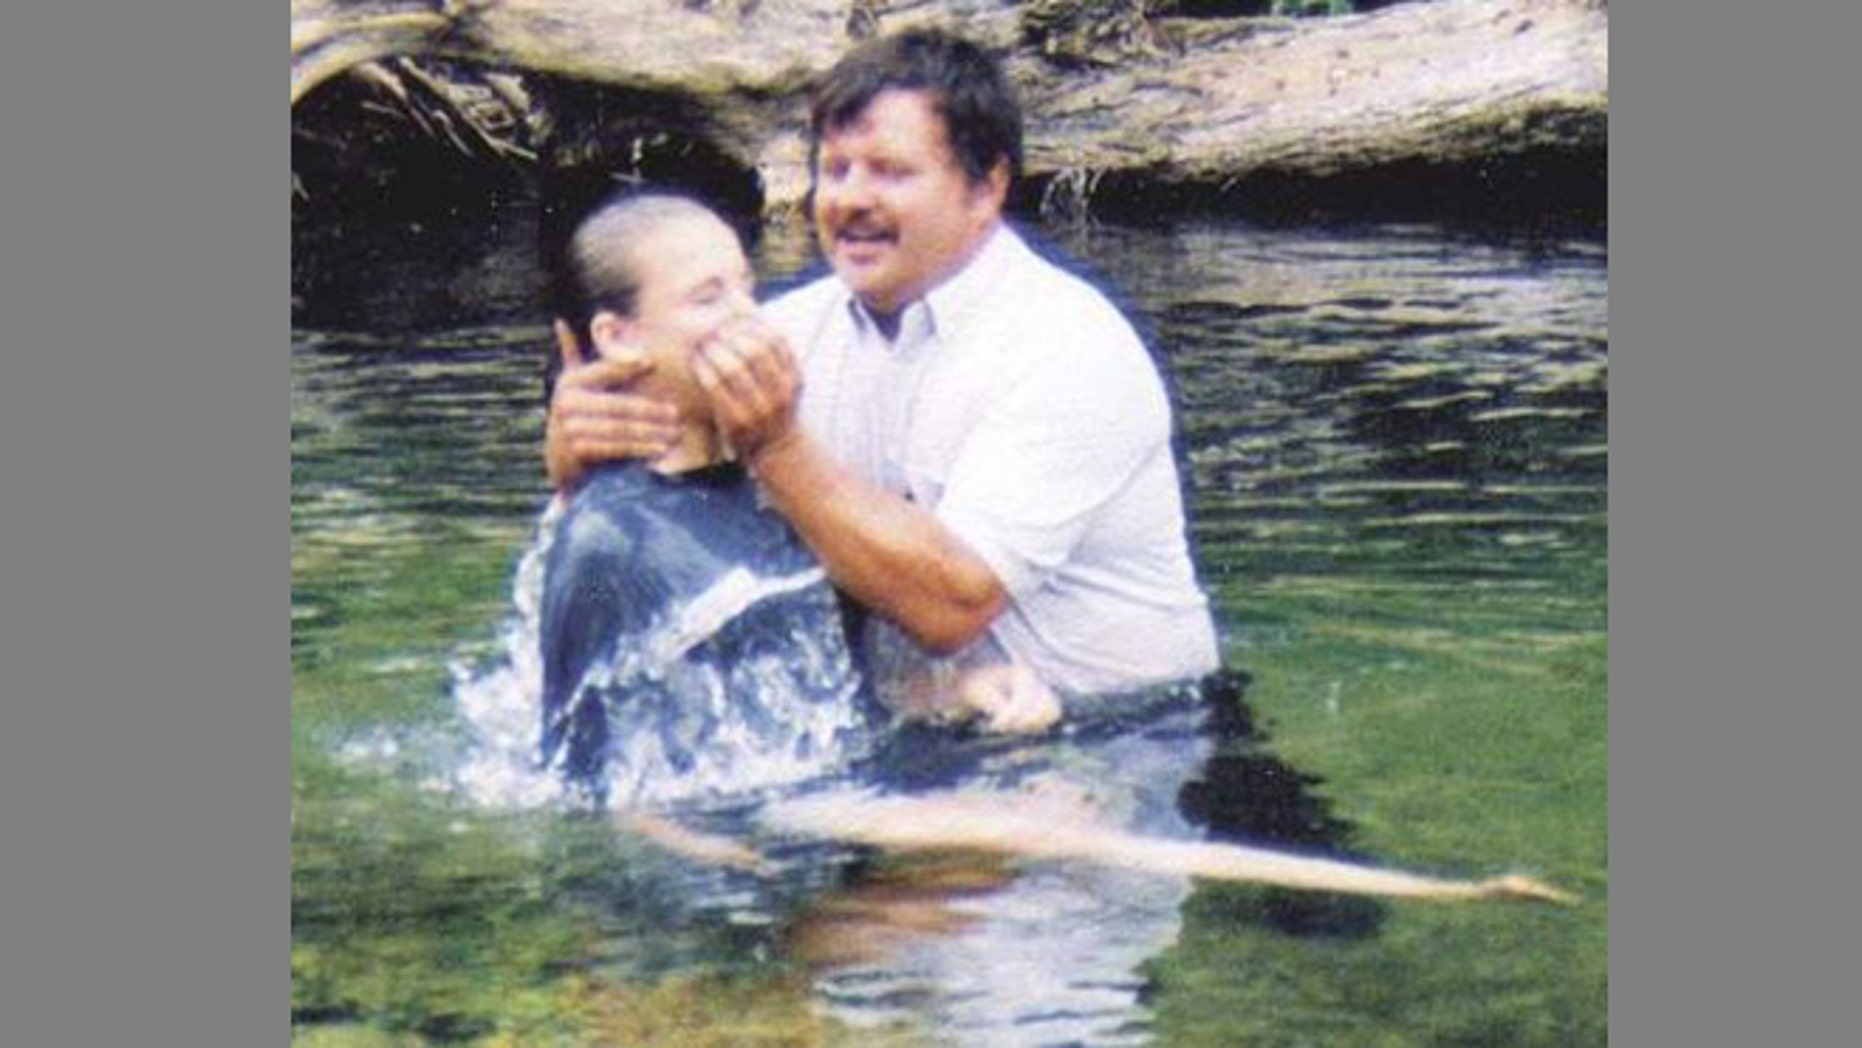 Pastor Jim Privett of Gladden Baptist Church performs a baptism in a Missouri creek.